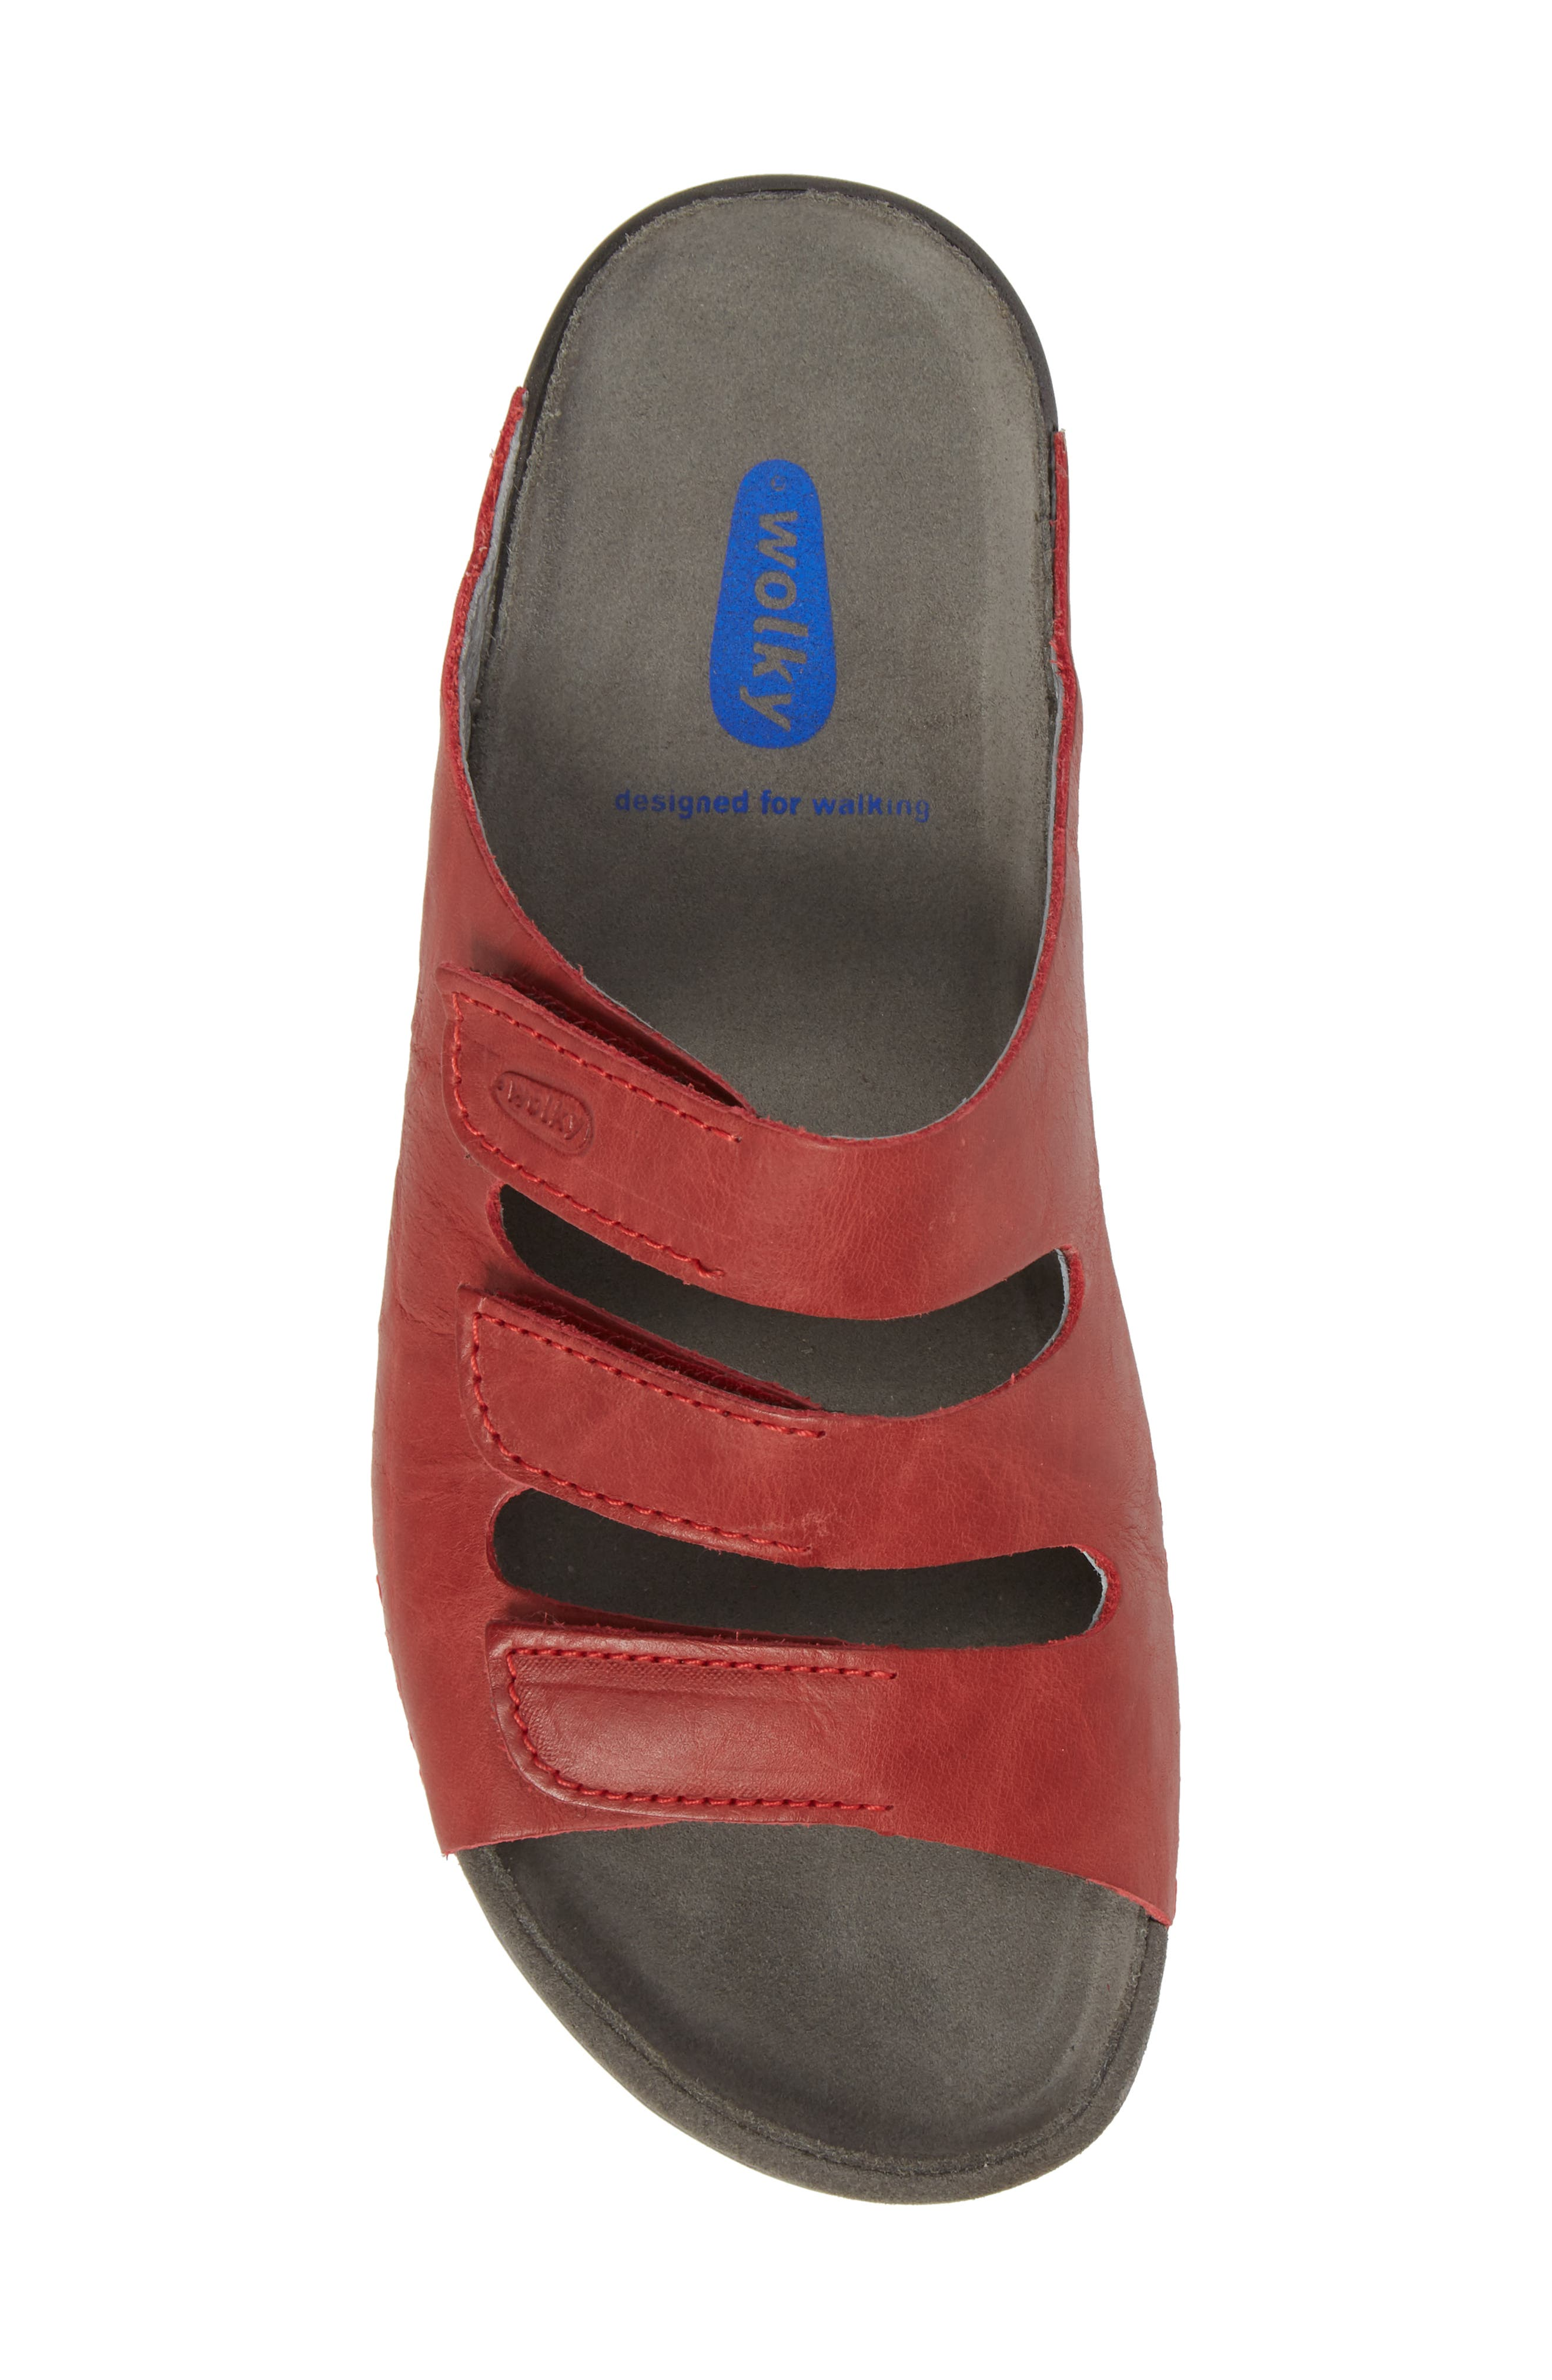 Nomad Slide Sandal,                             Alternate thumbnail 5, color,                             Red Leather